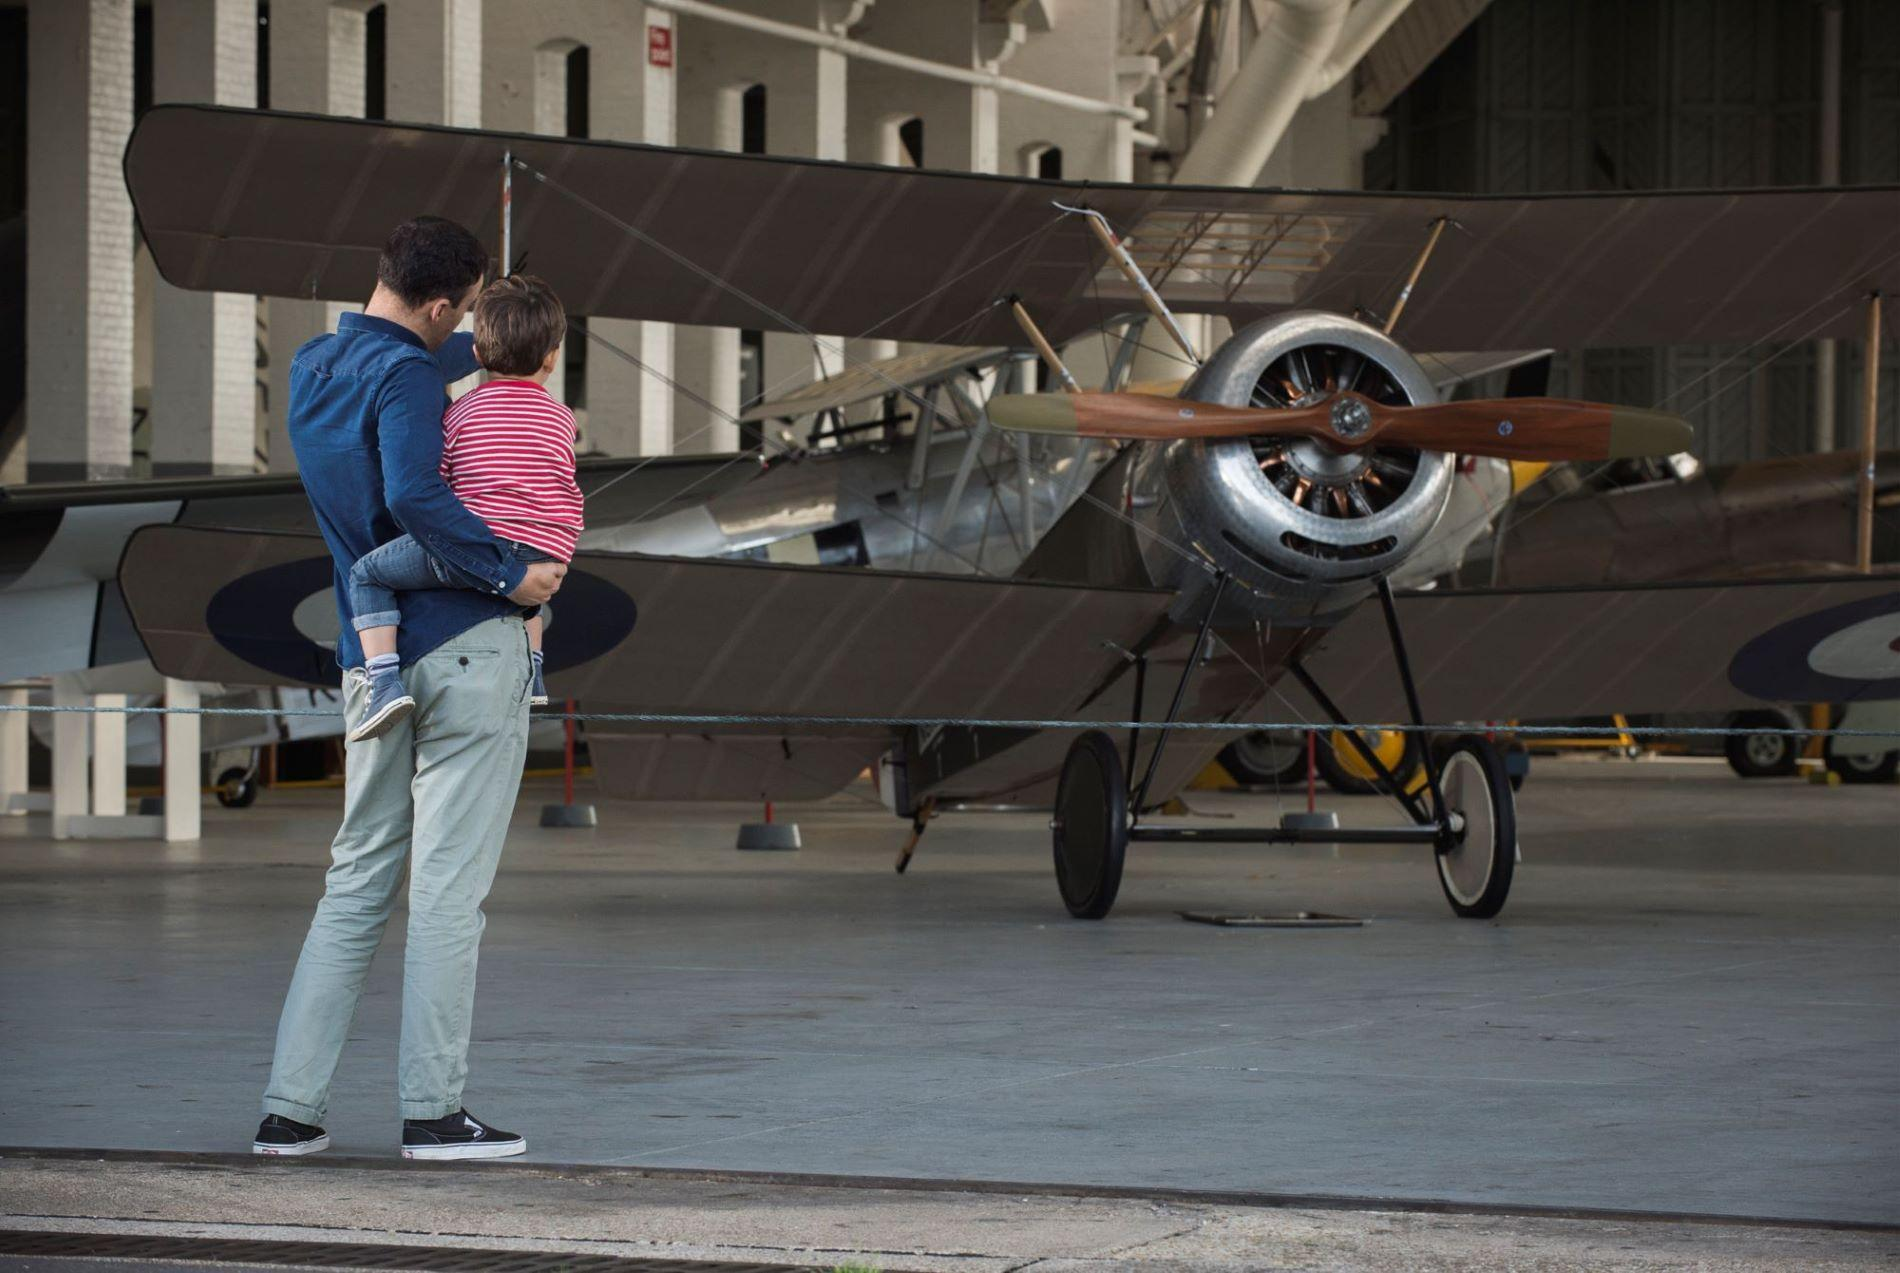 A father holds a young child standing in front of a biplane at IWM Duxford